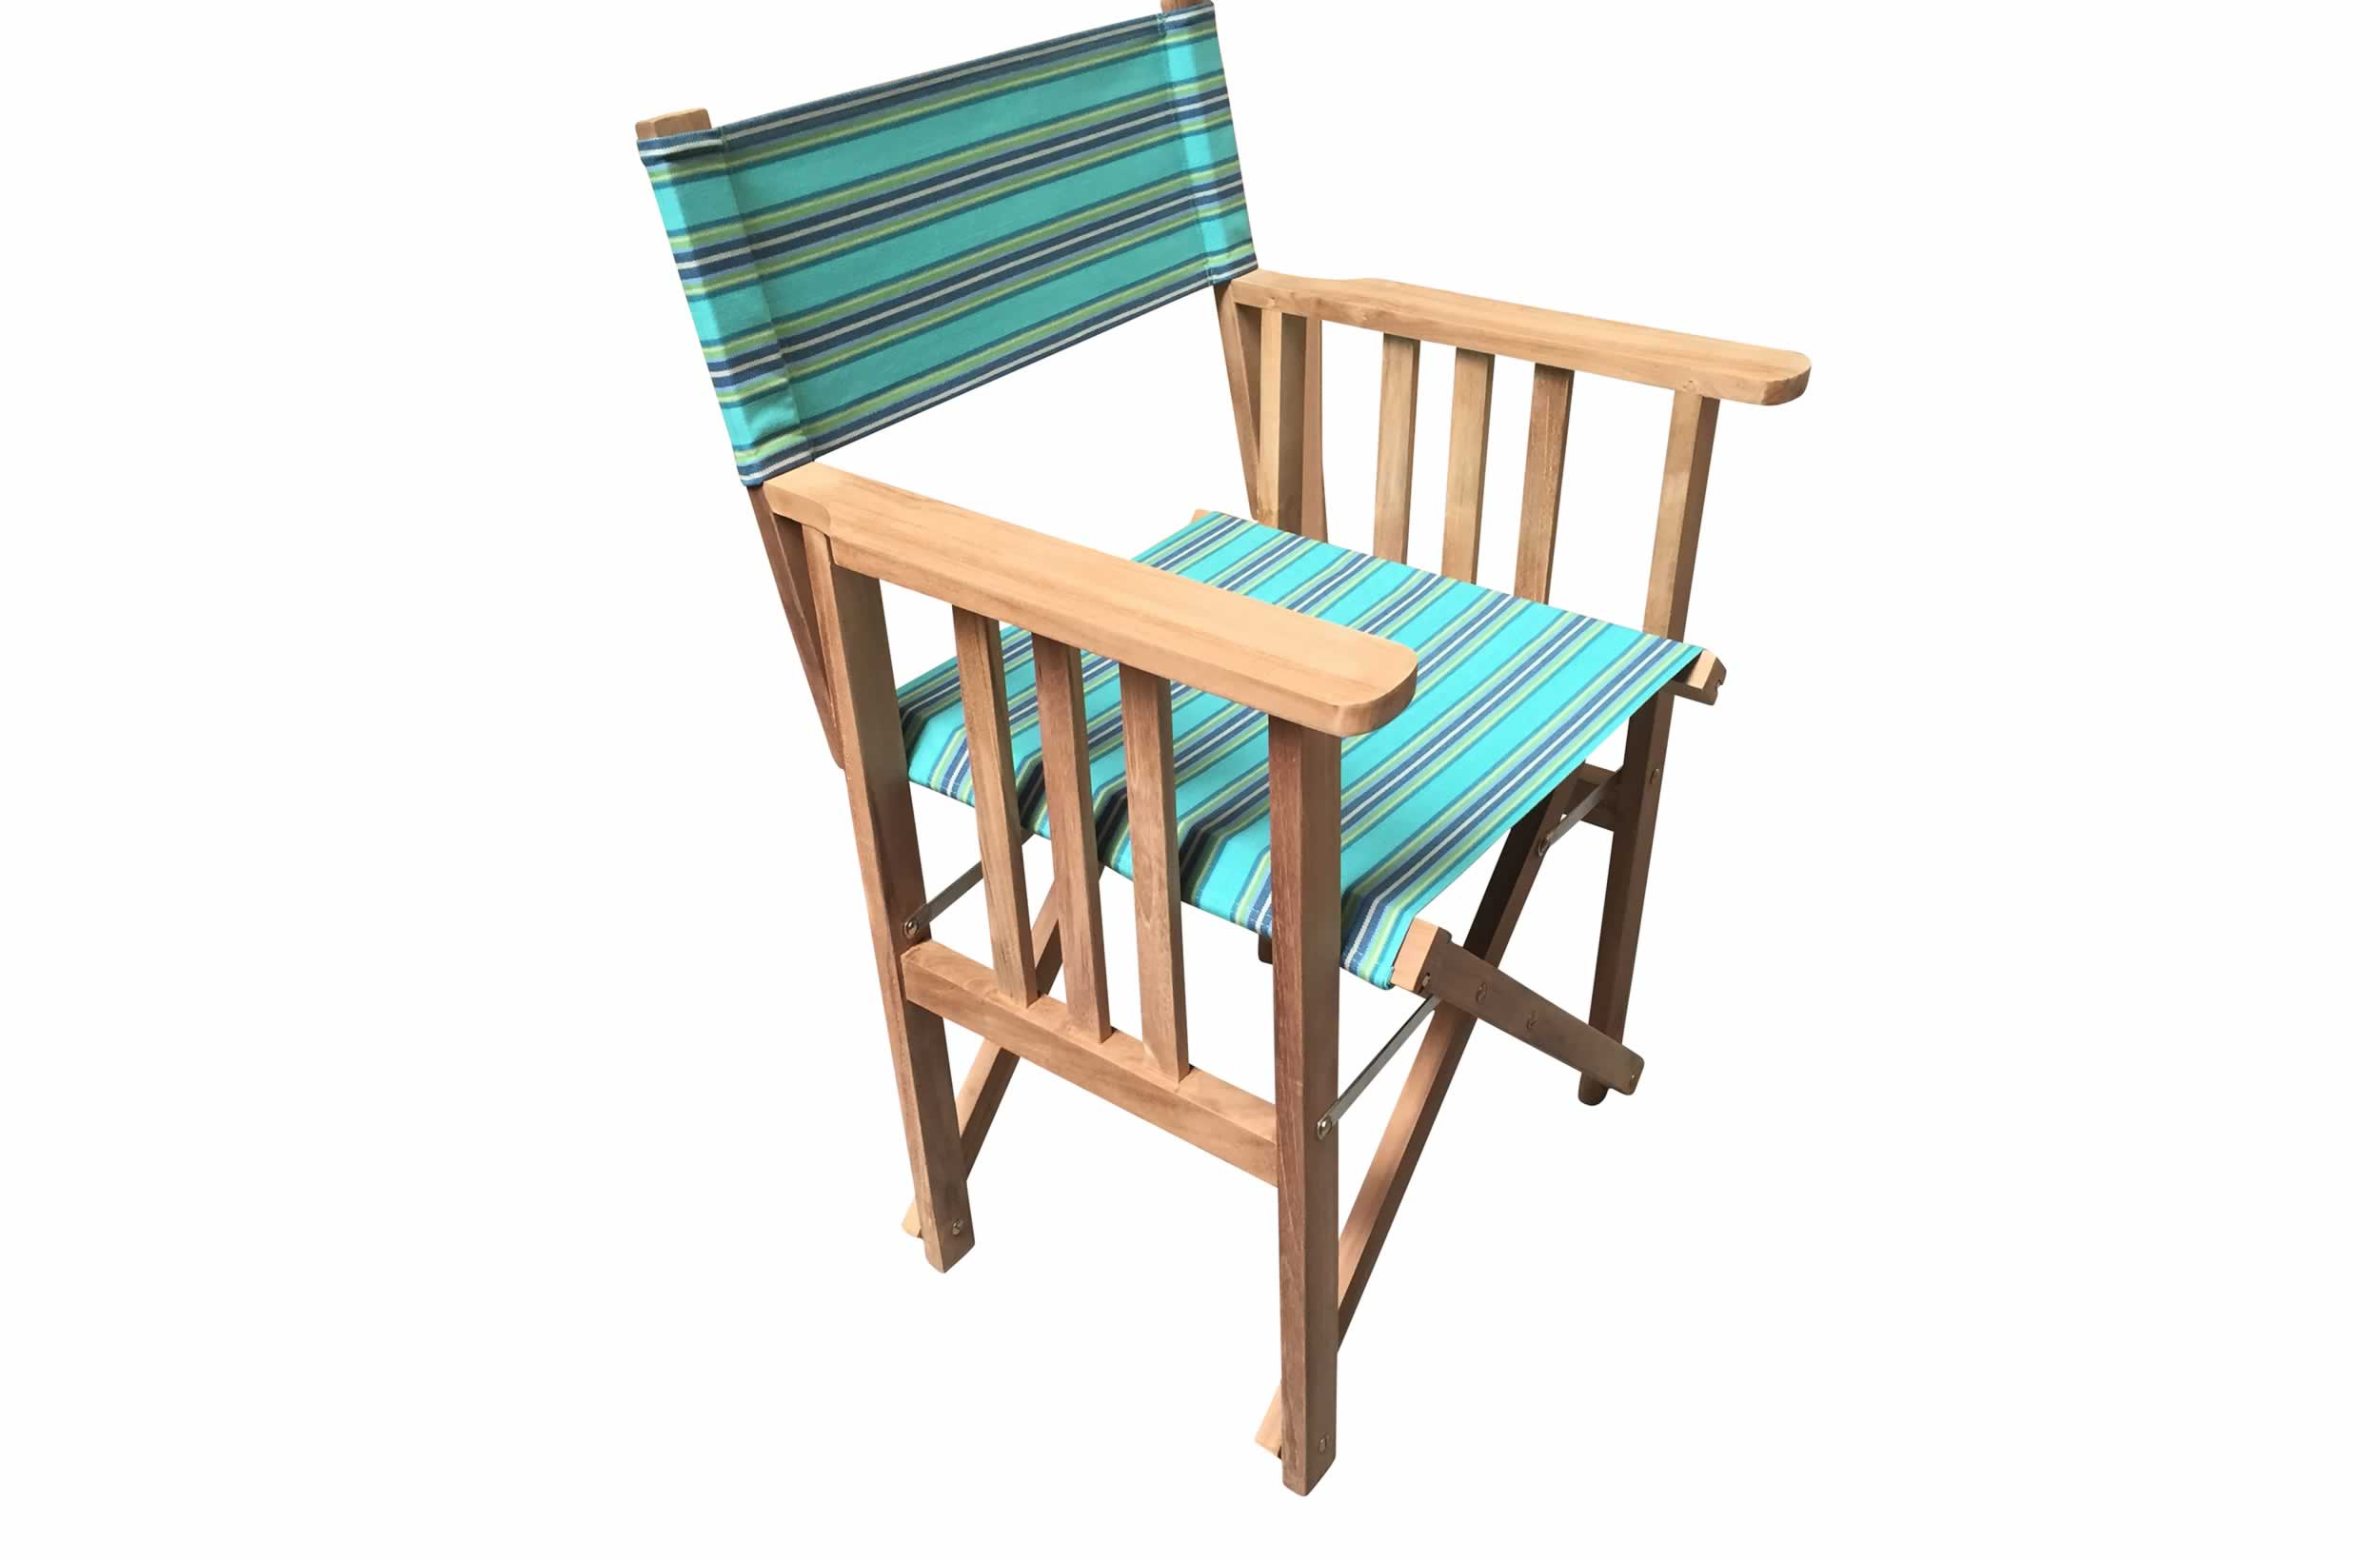 Teak Directors Chair - Fencing Stripe